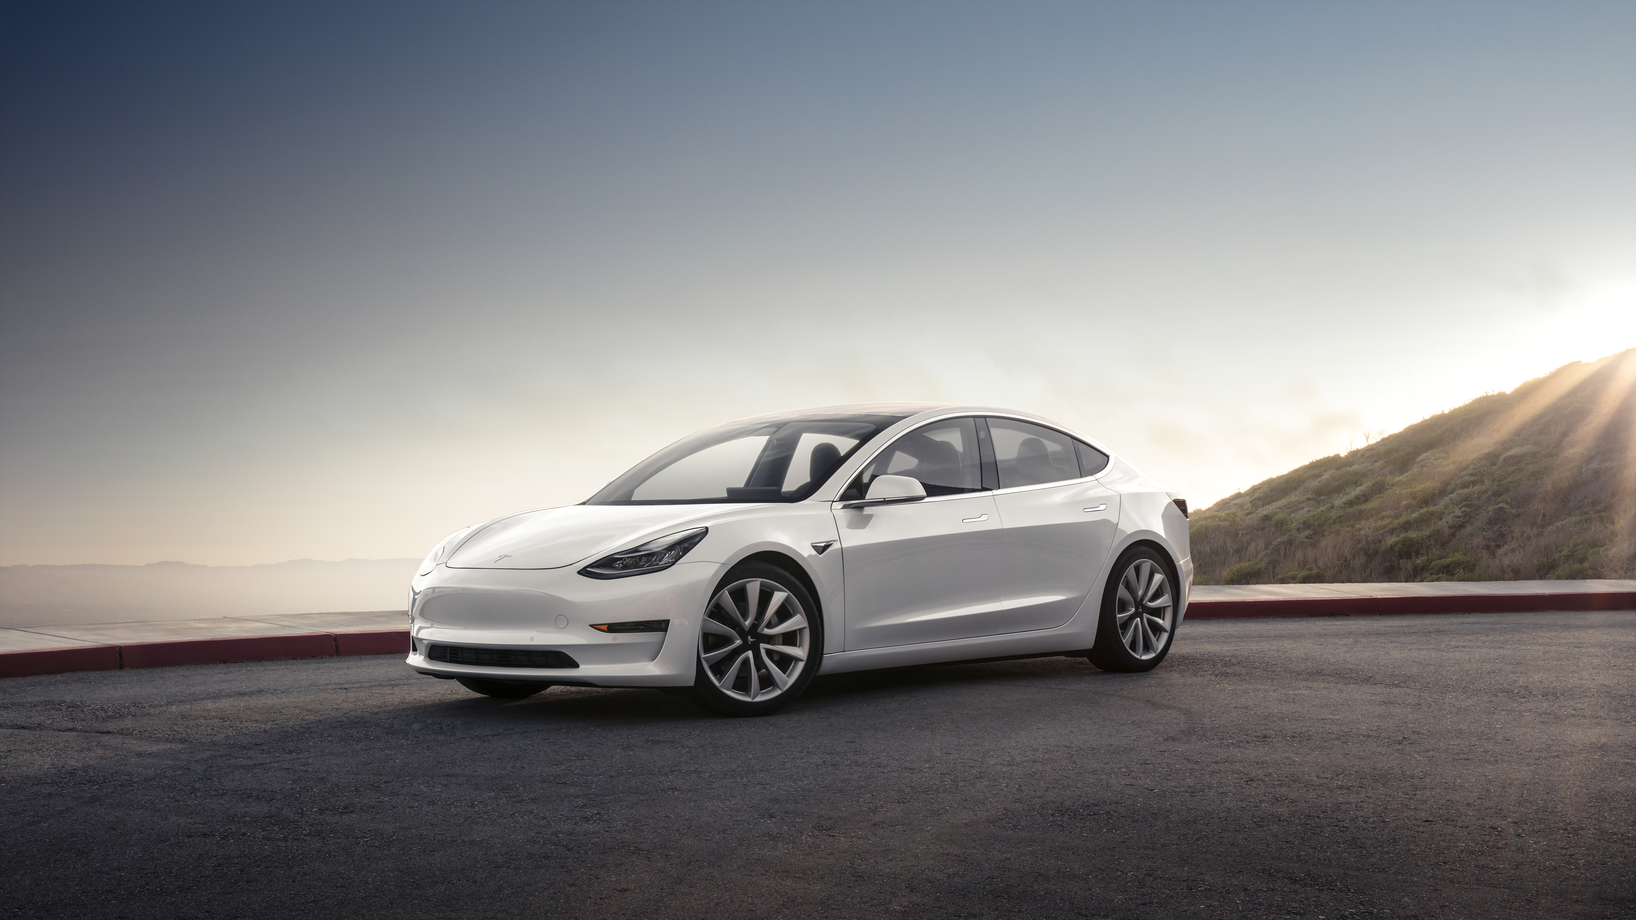 Tesla posts another record for deliveries, led by the Model 3